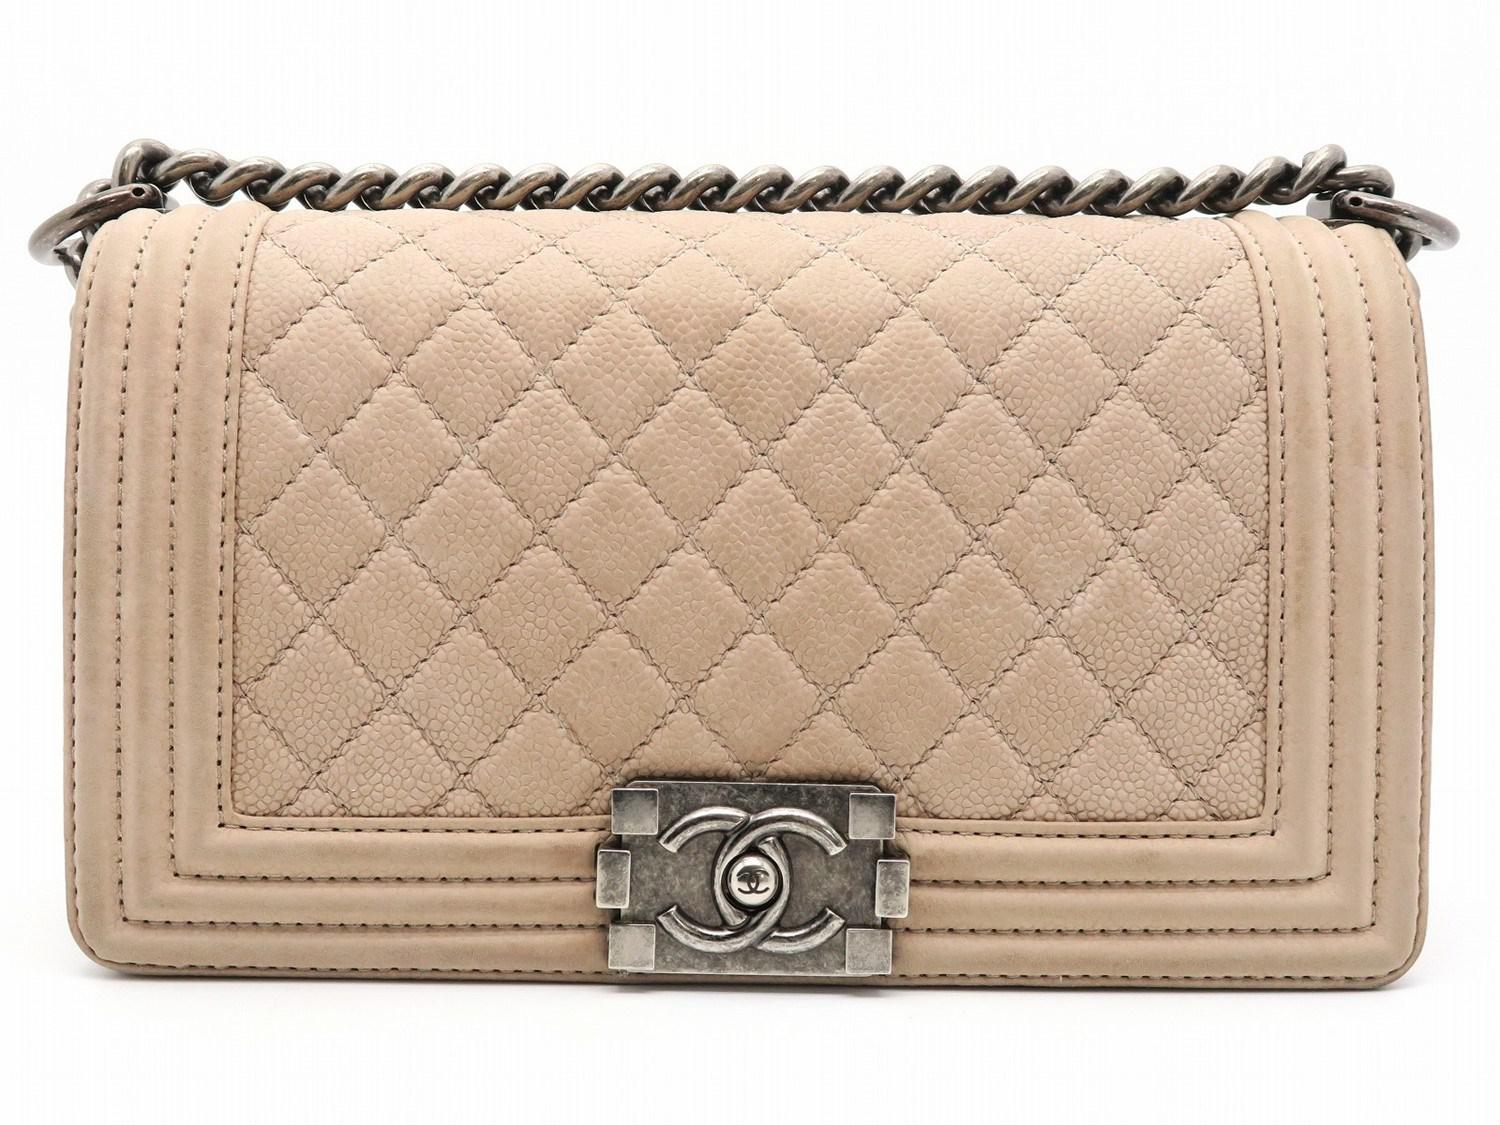 9d292984efaee0 Lyst - Chanel Caviar Leather Boy Chain Shoulder Bag Brown 4728 in Brown